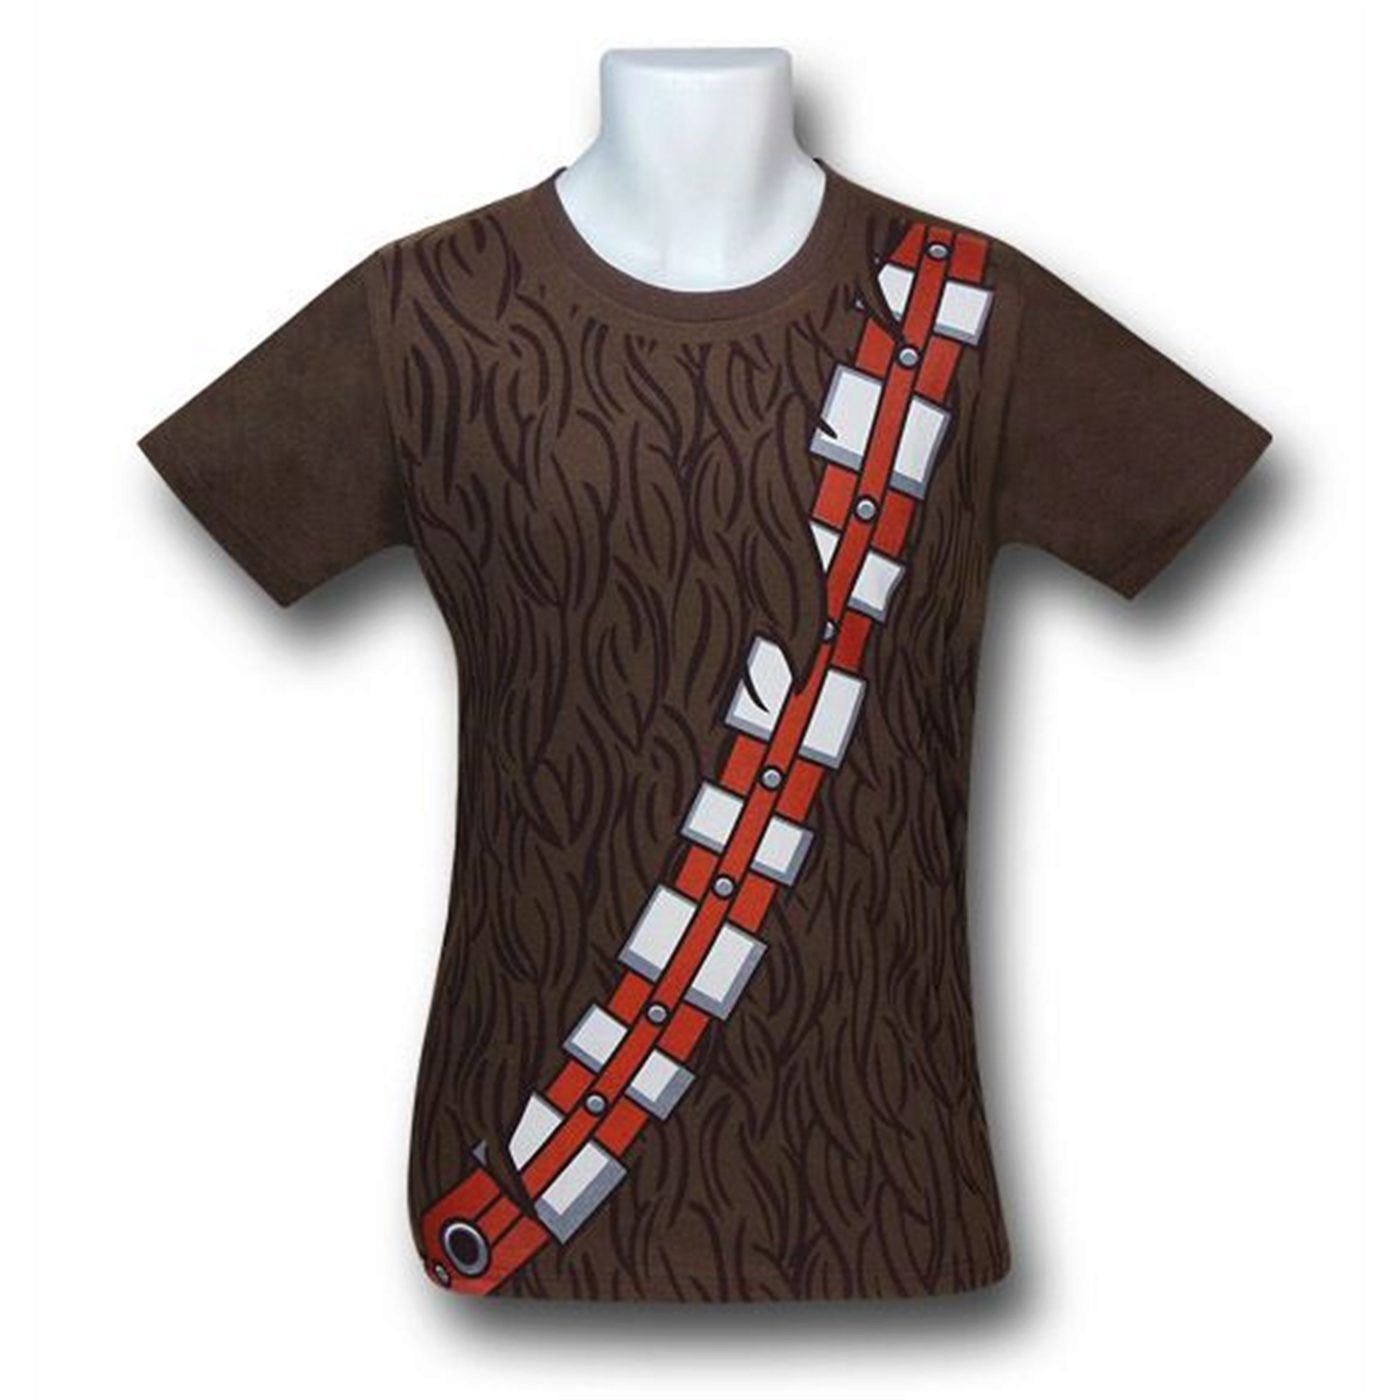 Best Star Wars Chewbacca Costume 30 Single T-Shirt